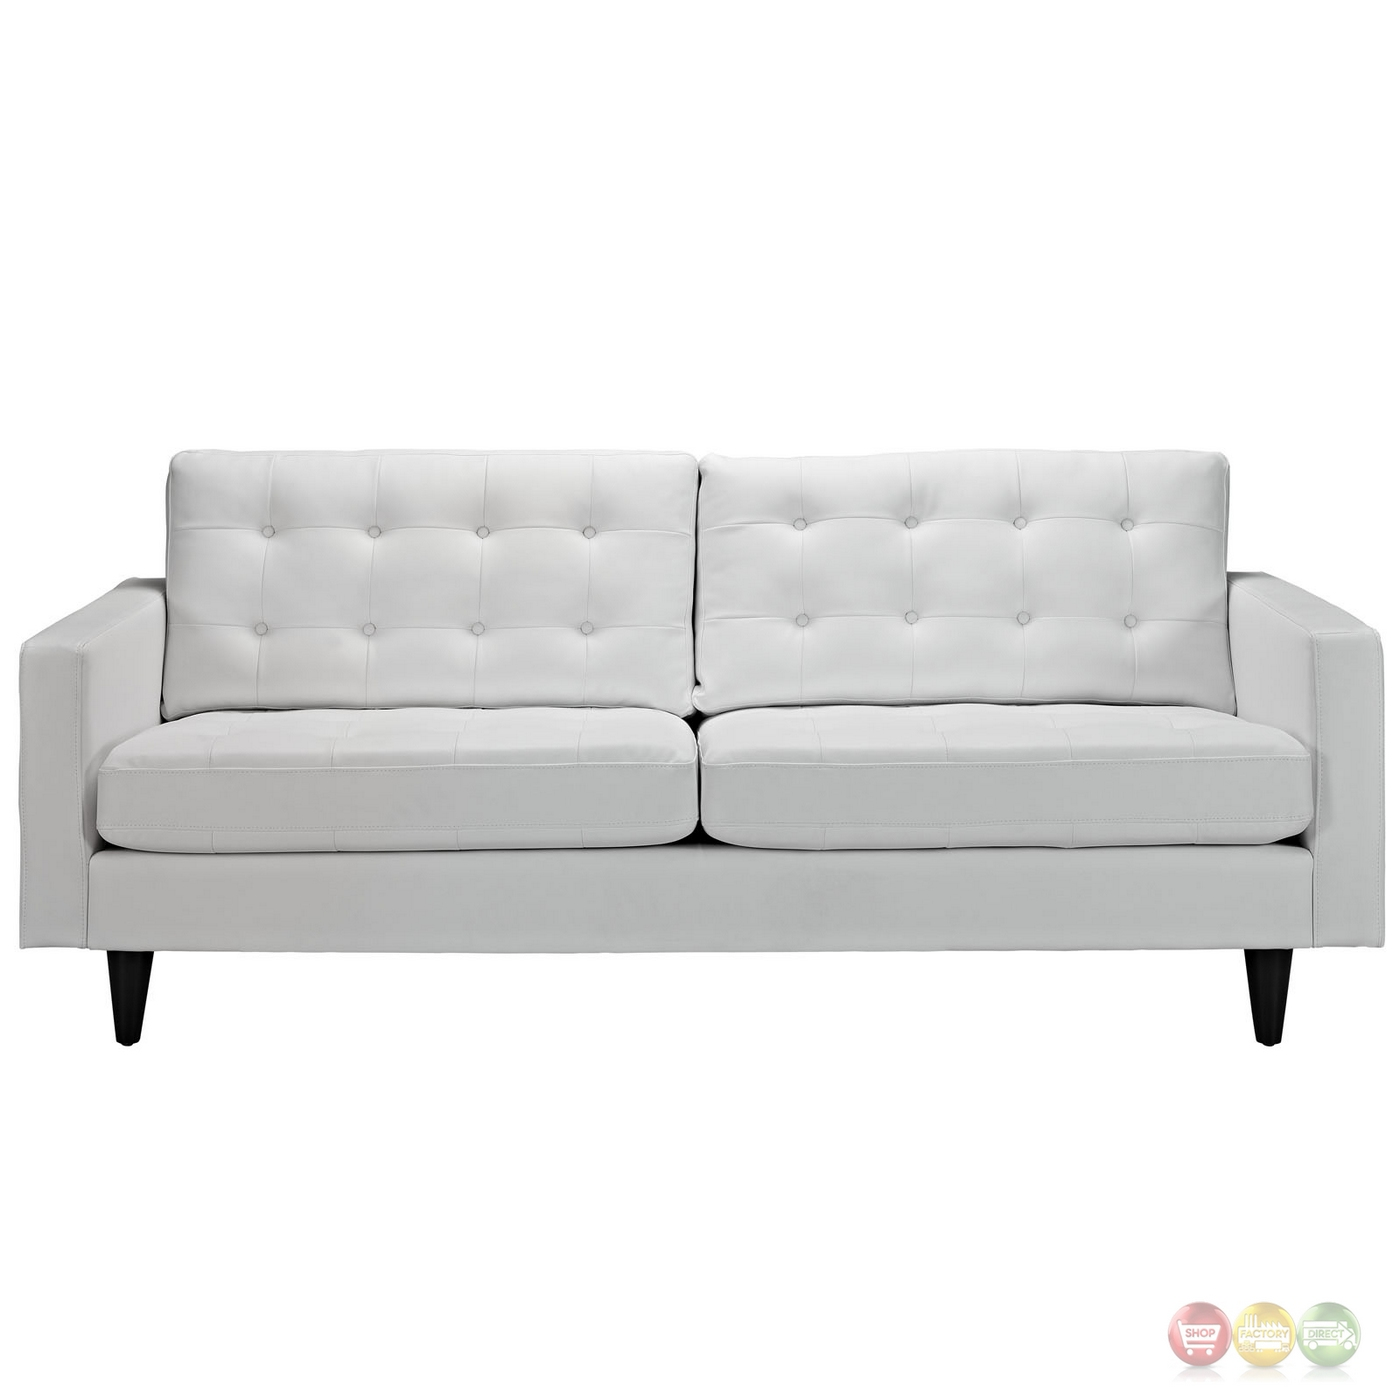 Modern White Leather Sectional Sofa: Empress Contemporary Button-tufted Leather Sofa, White